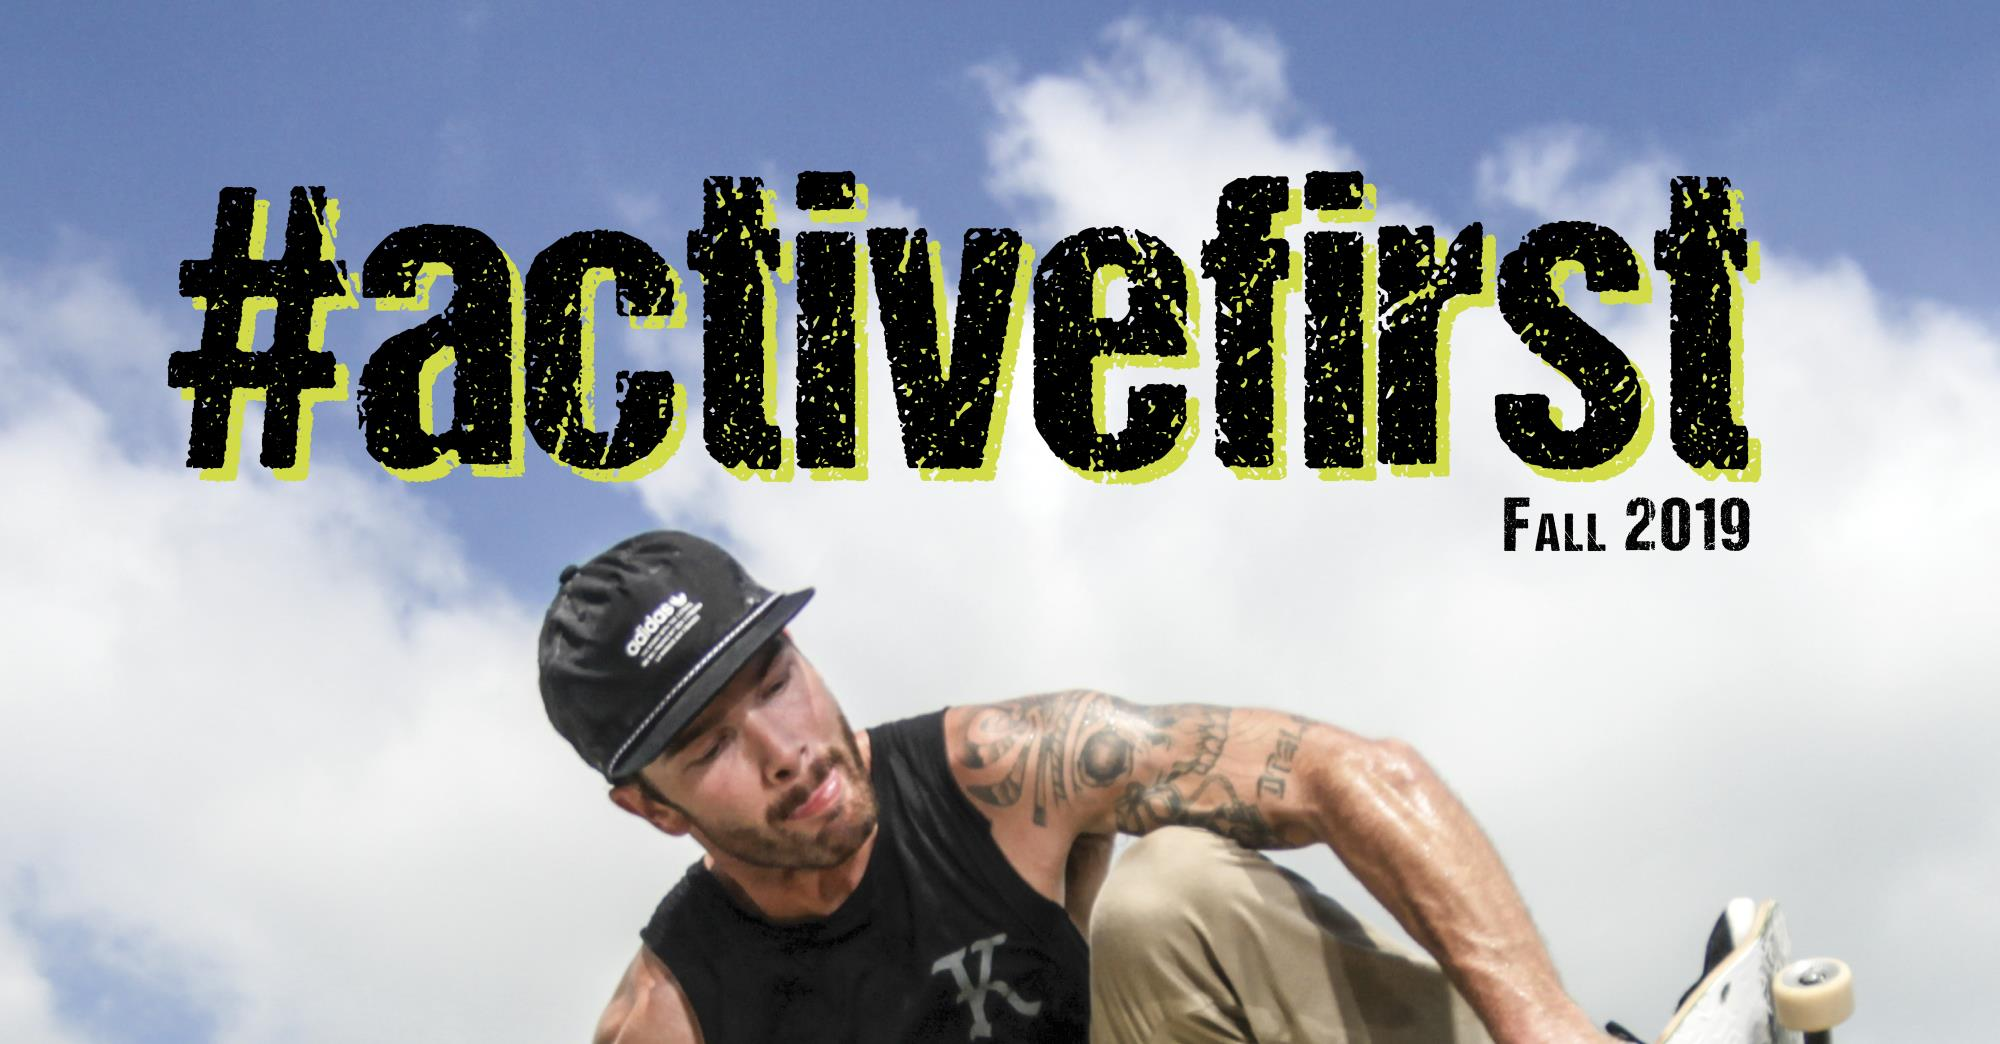 Fall 2019 #activefirst Guide